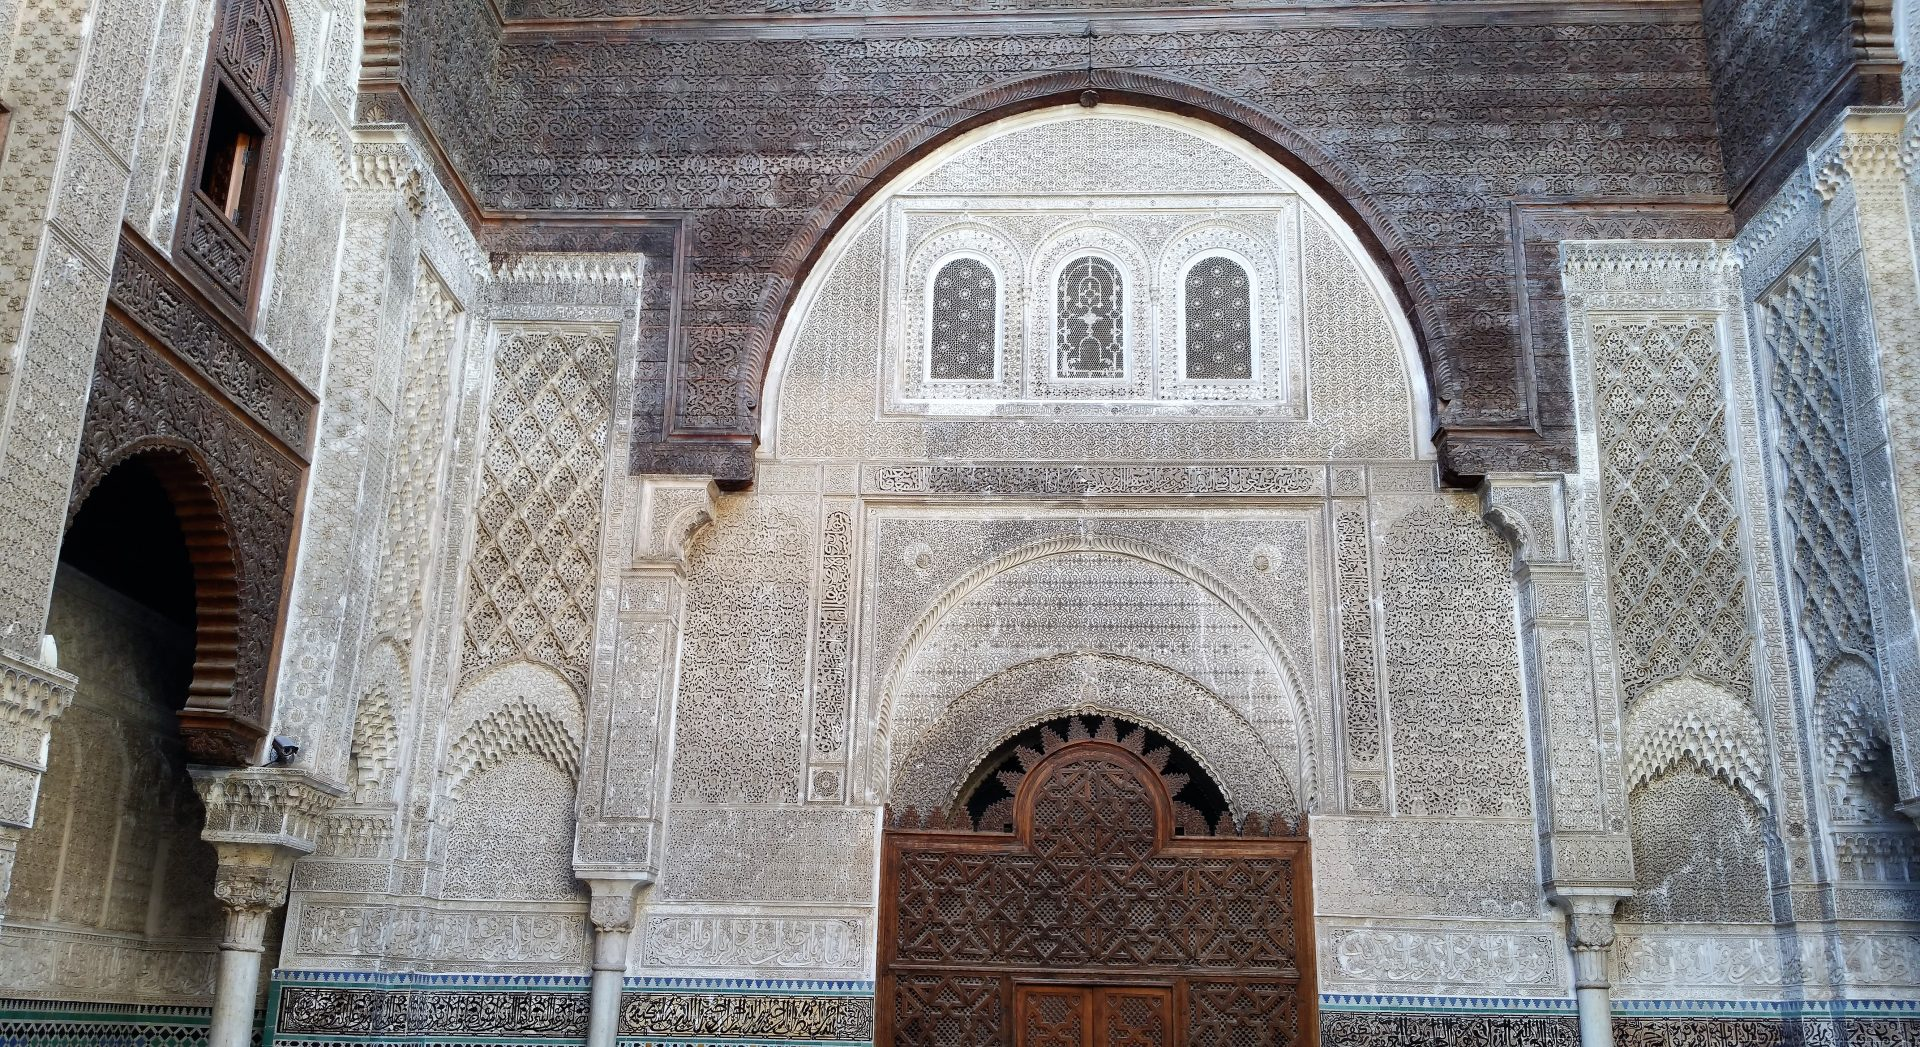 VIDEO: MADRAZA EL ATTARINE, FEZ (MARRUECOS)